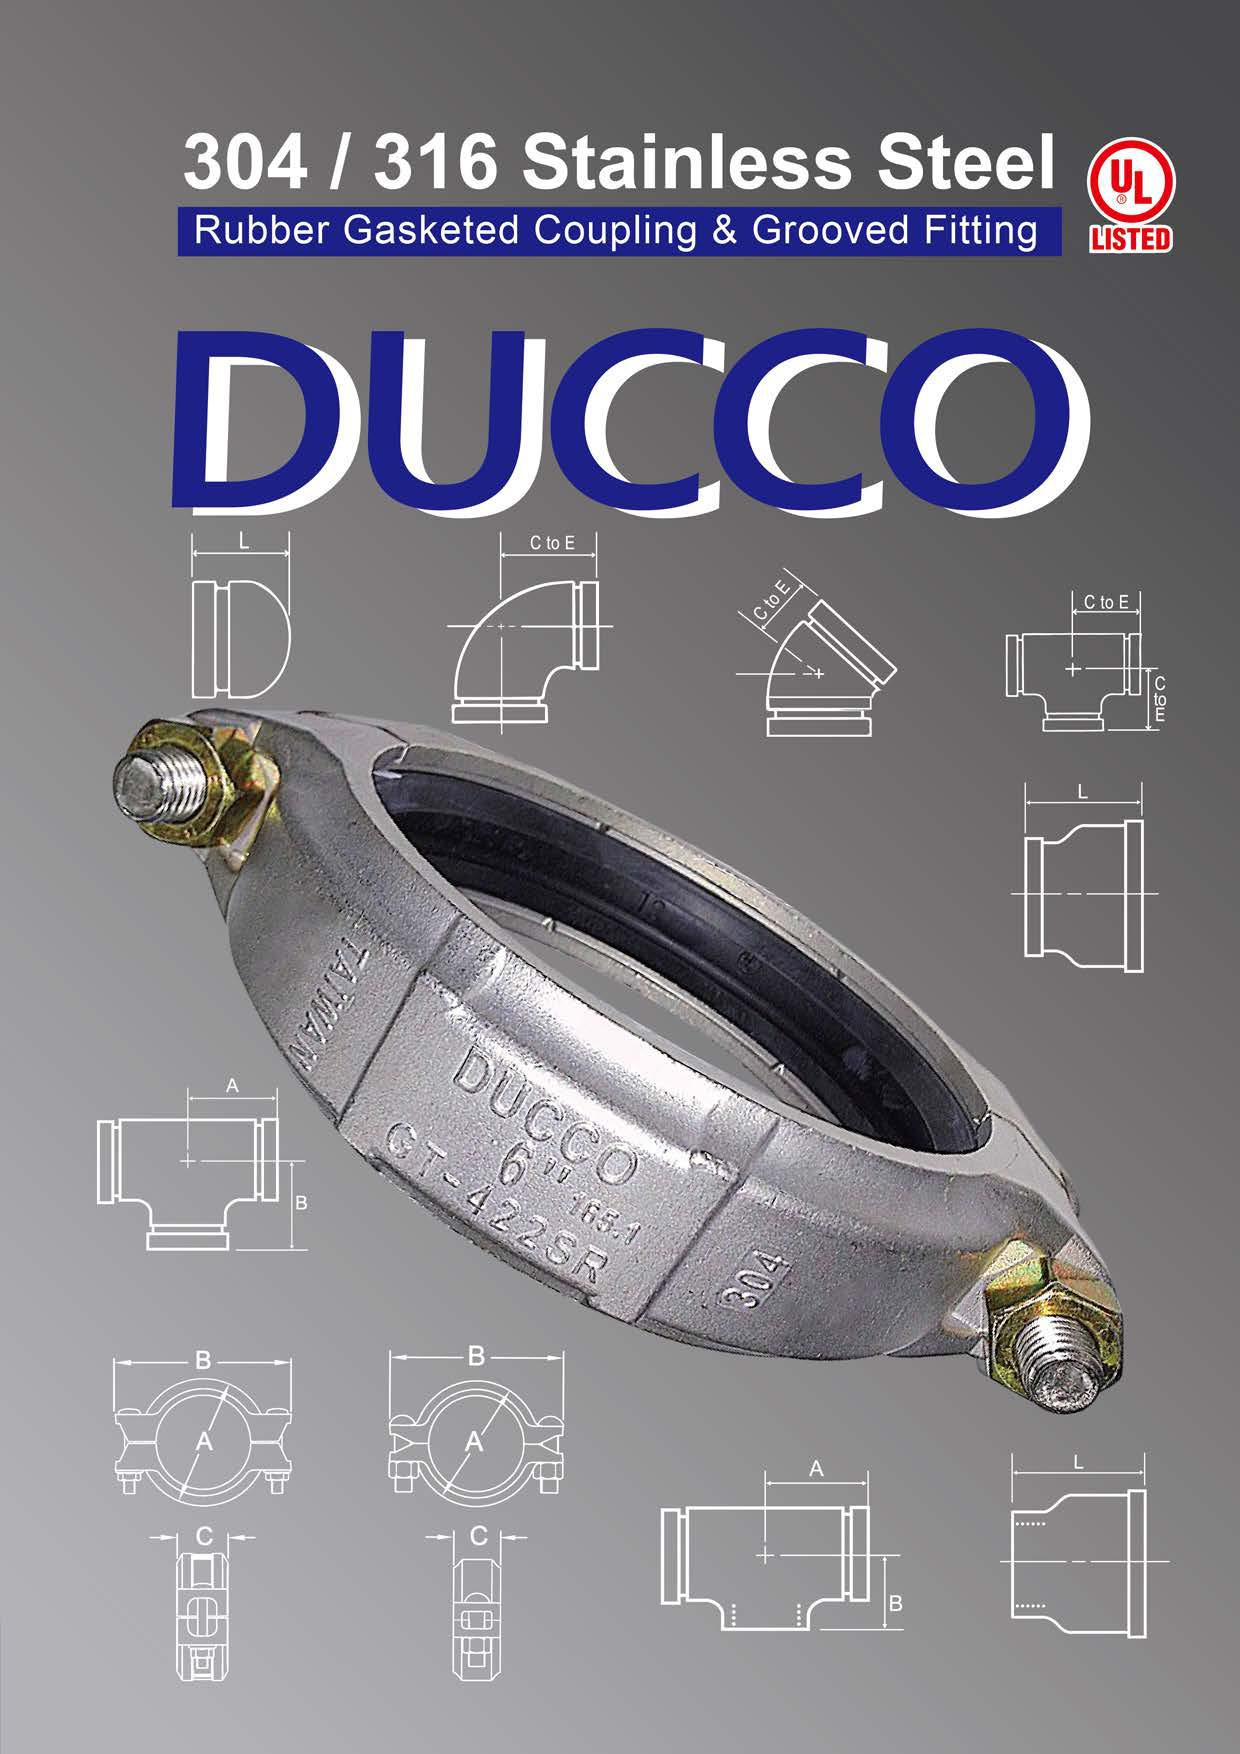 DUCCO STAINLESS STEEL GROOVED PRODUCTS (1).jpg